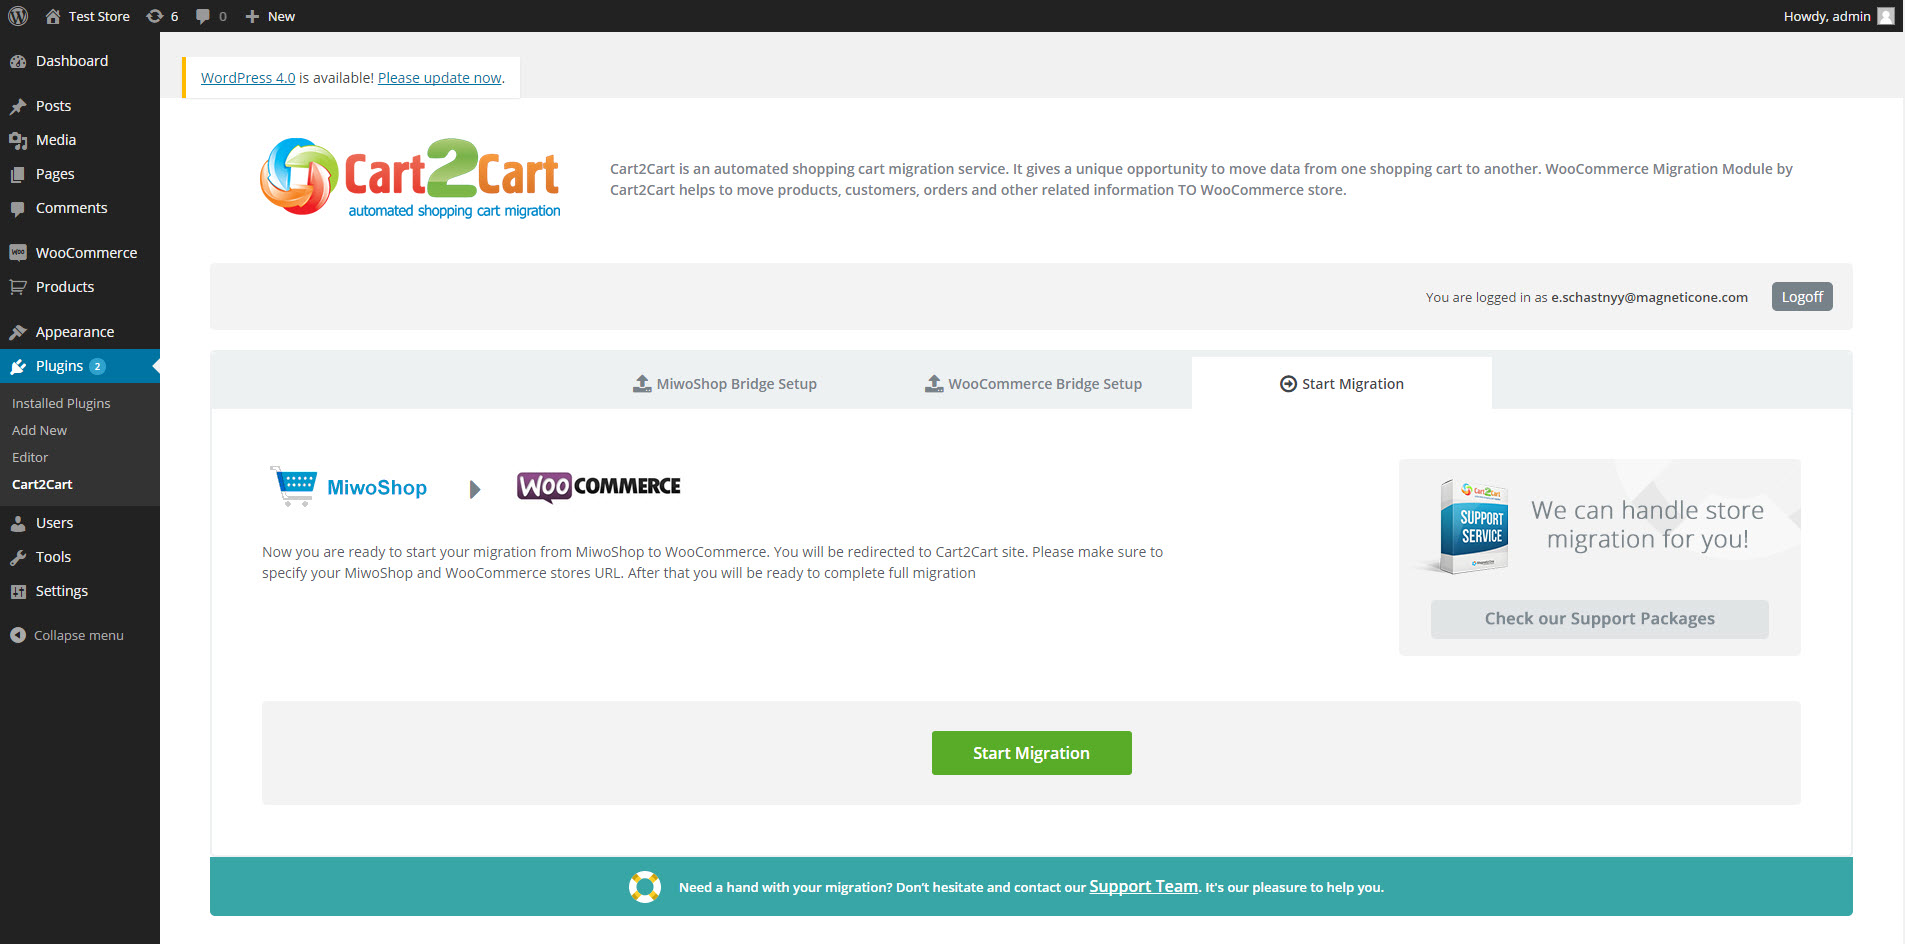 cart2cart-miwoshop-to-woocommerce-migration screenshot 5